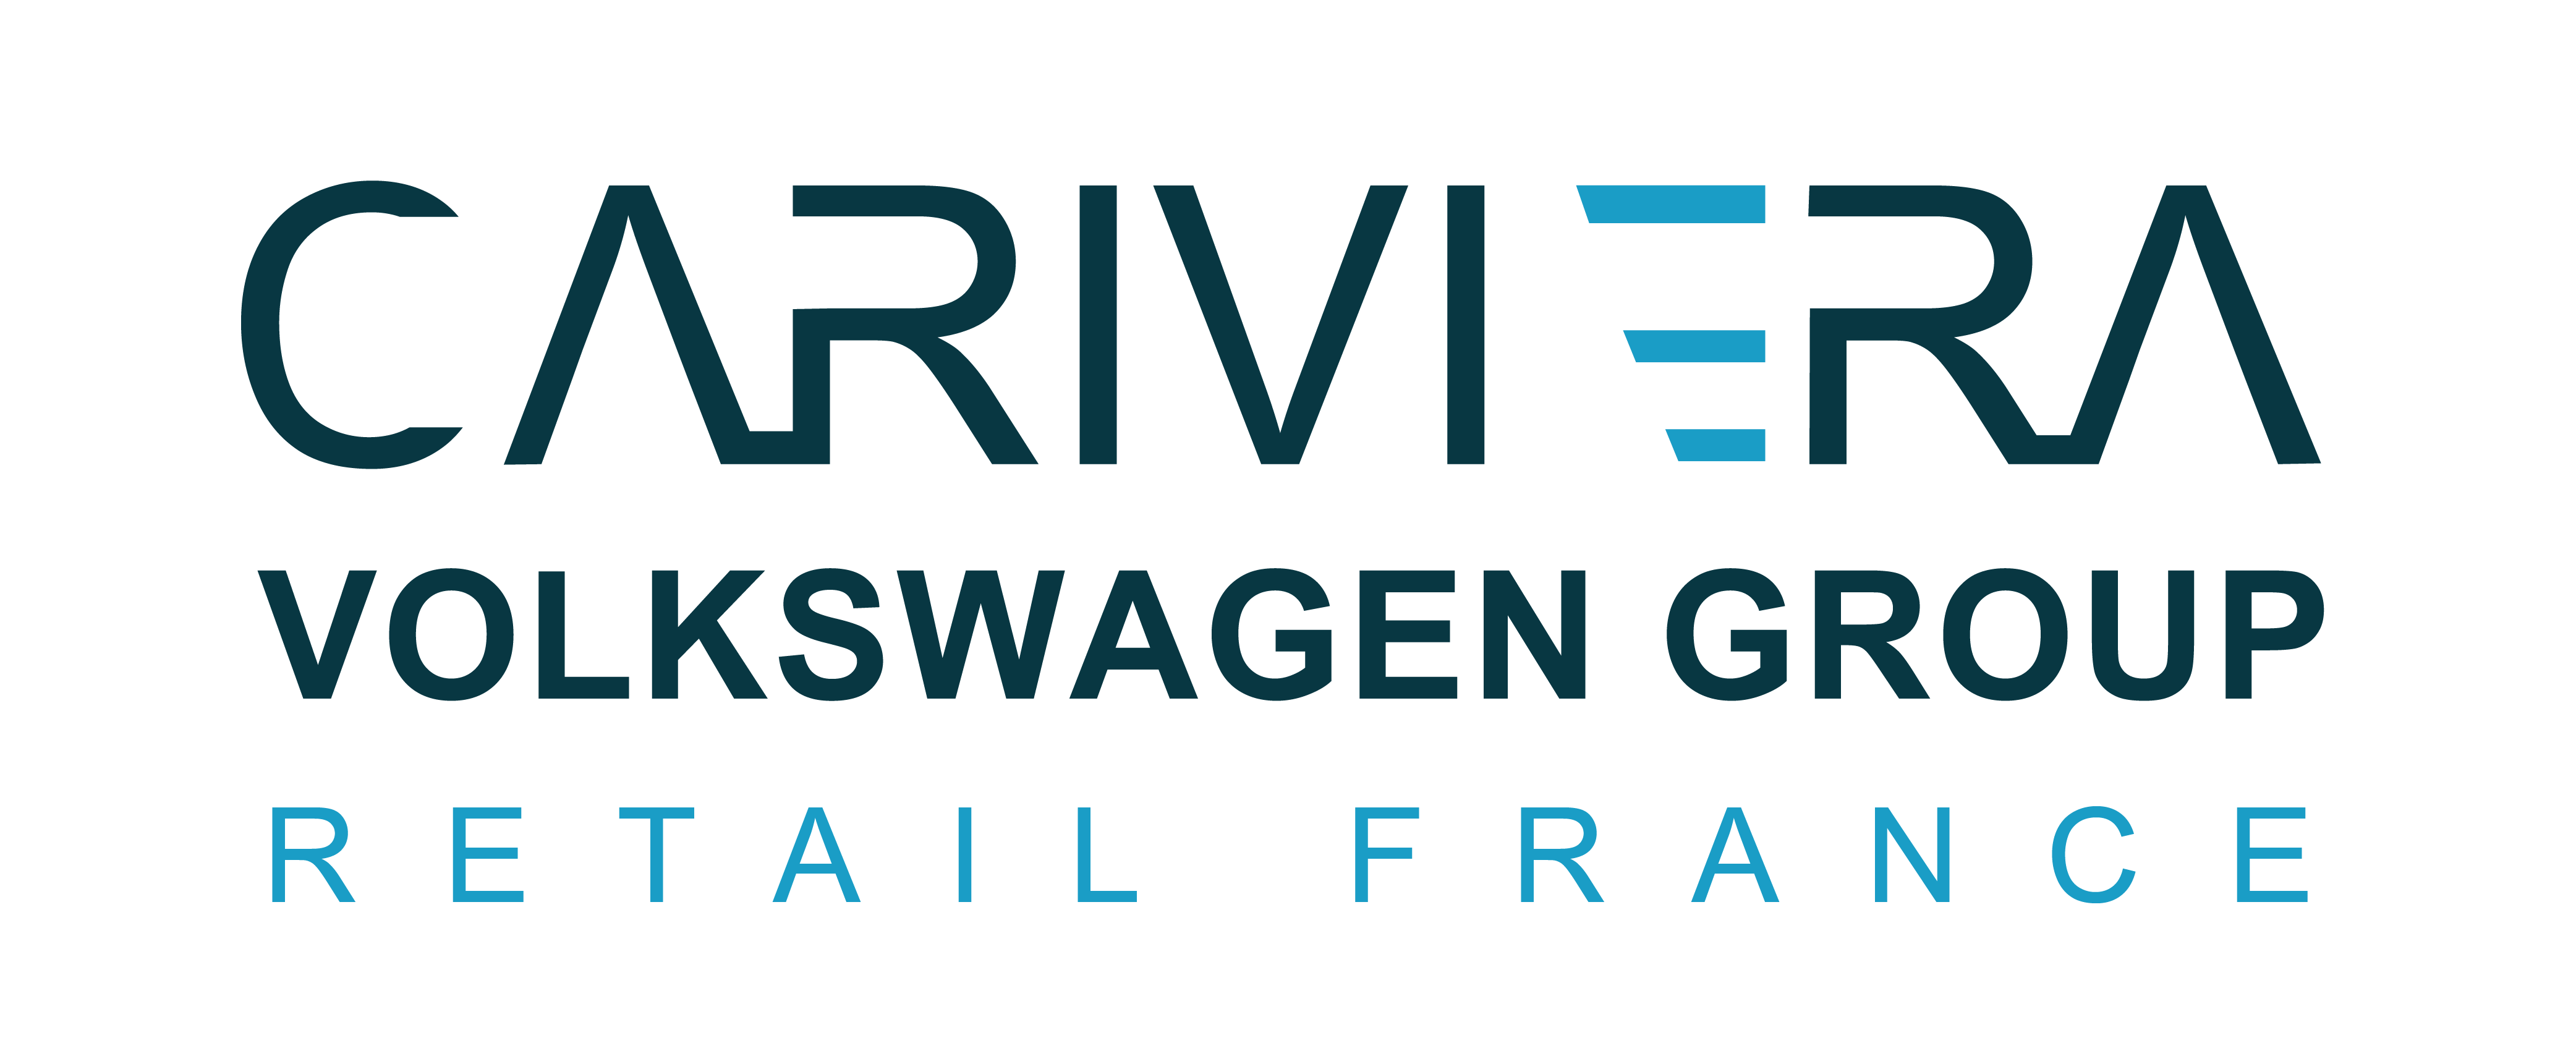 cariviera volkswagen groupe retail france